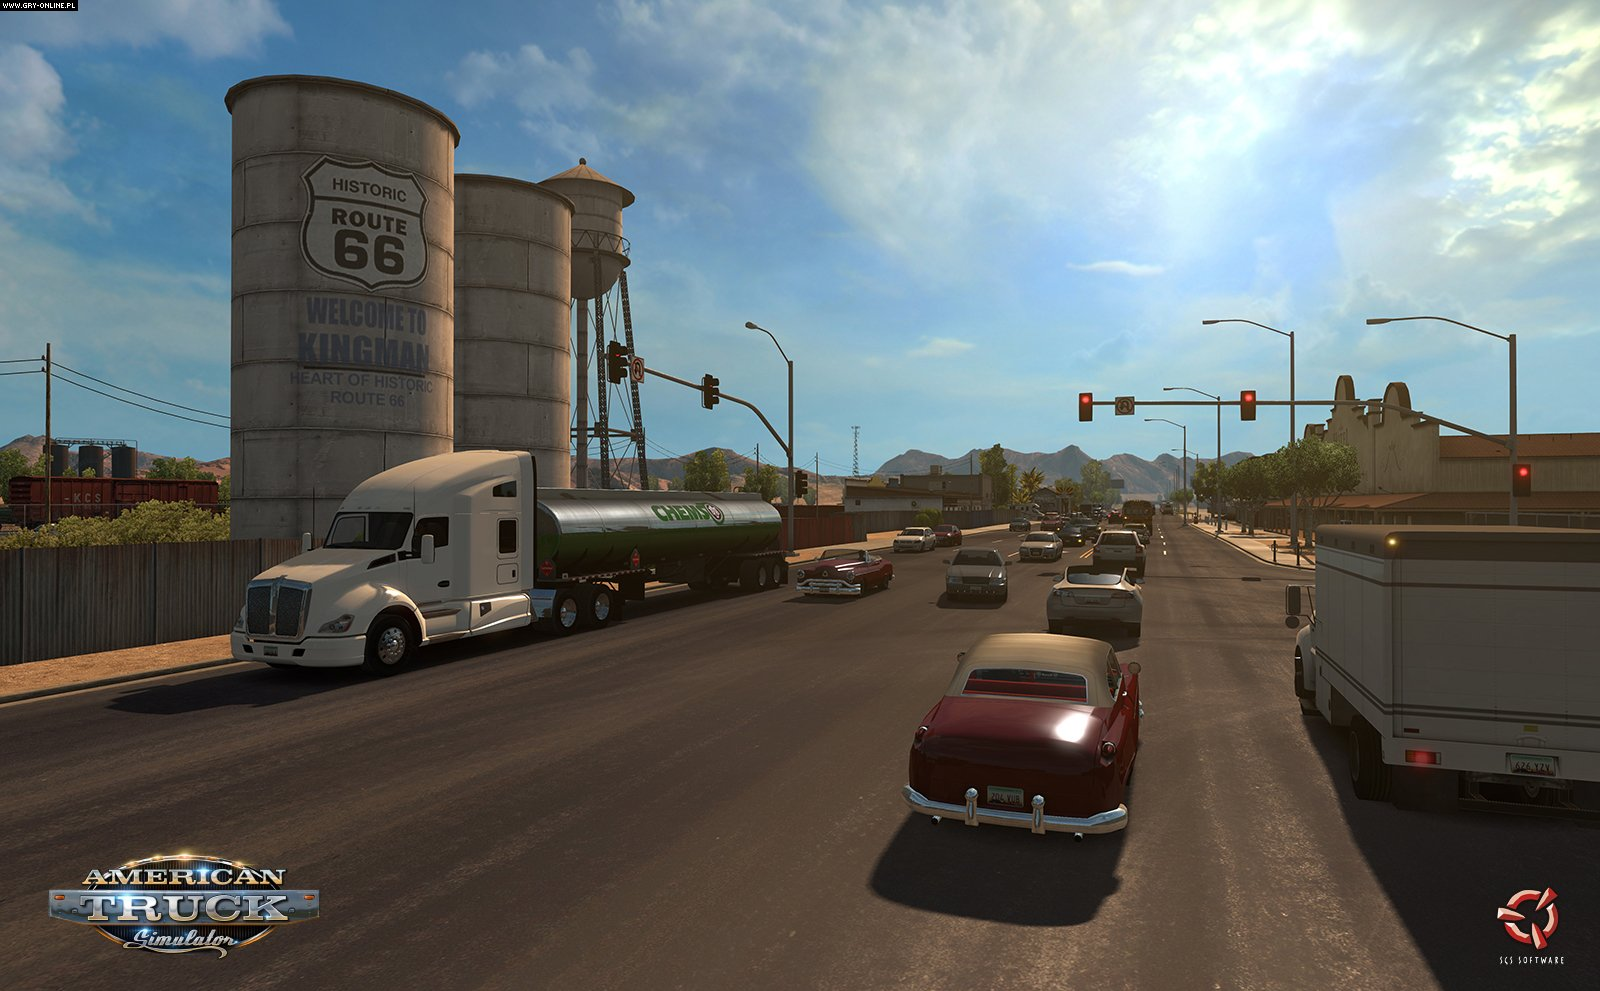 American Truck Simulator PC Gry Screen 3/68, SCS Software, IMGN.PRO